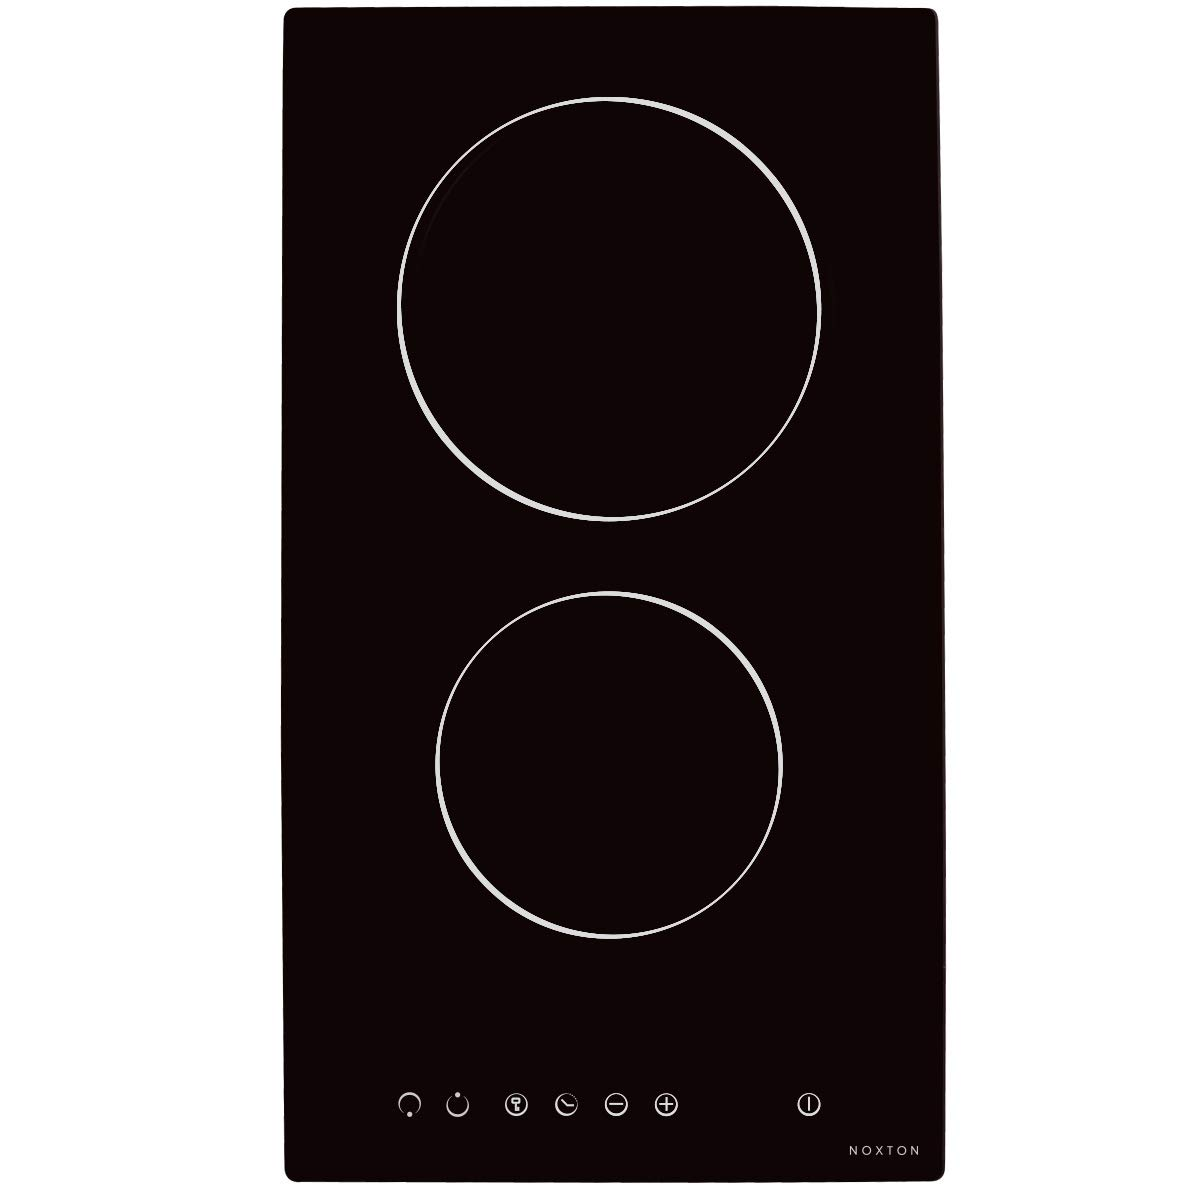 NOXTON Ceramic Cooktop Built-in 2 Burners Electric Cooktops Stove Electric Hob Cooker With Touch Control Child Lock Timer Easy To Clean 3000W with Hard Wire for 220V~240V